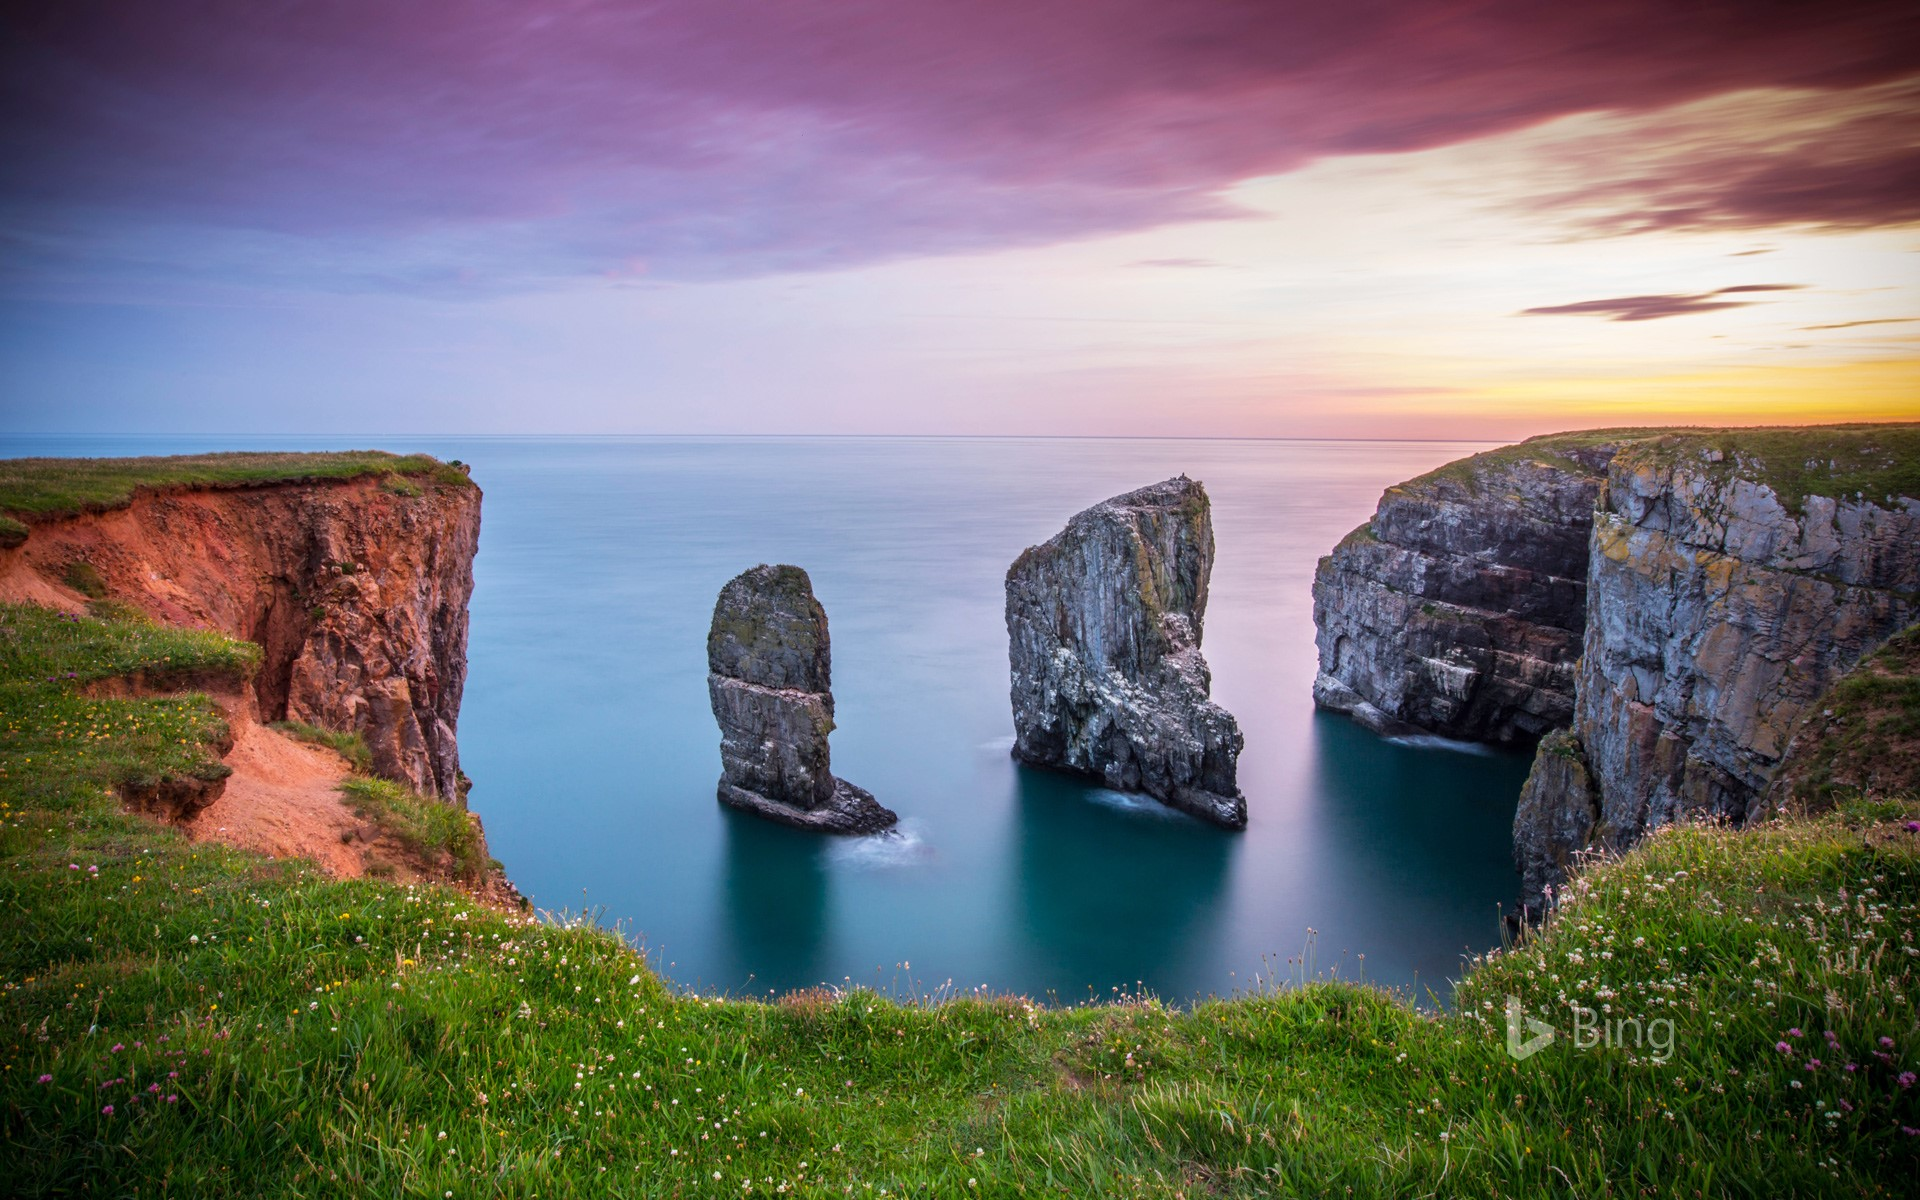 Stack Rocks at Castlemartin on the Pembrokeshire coastline, Wales